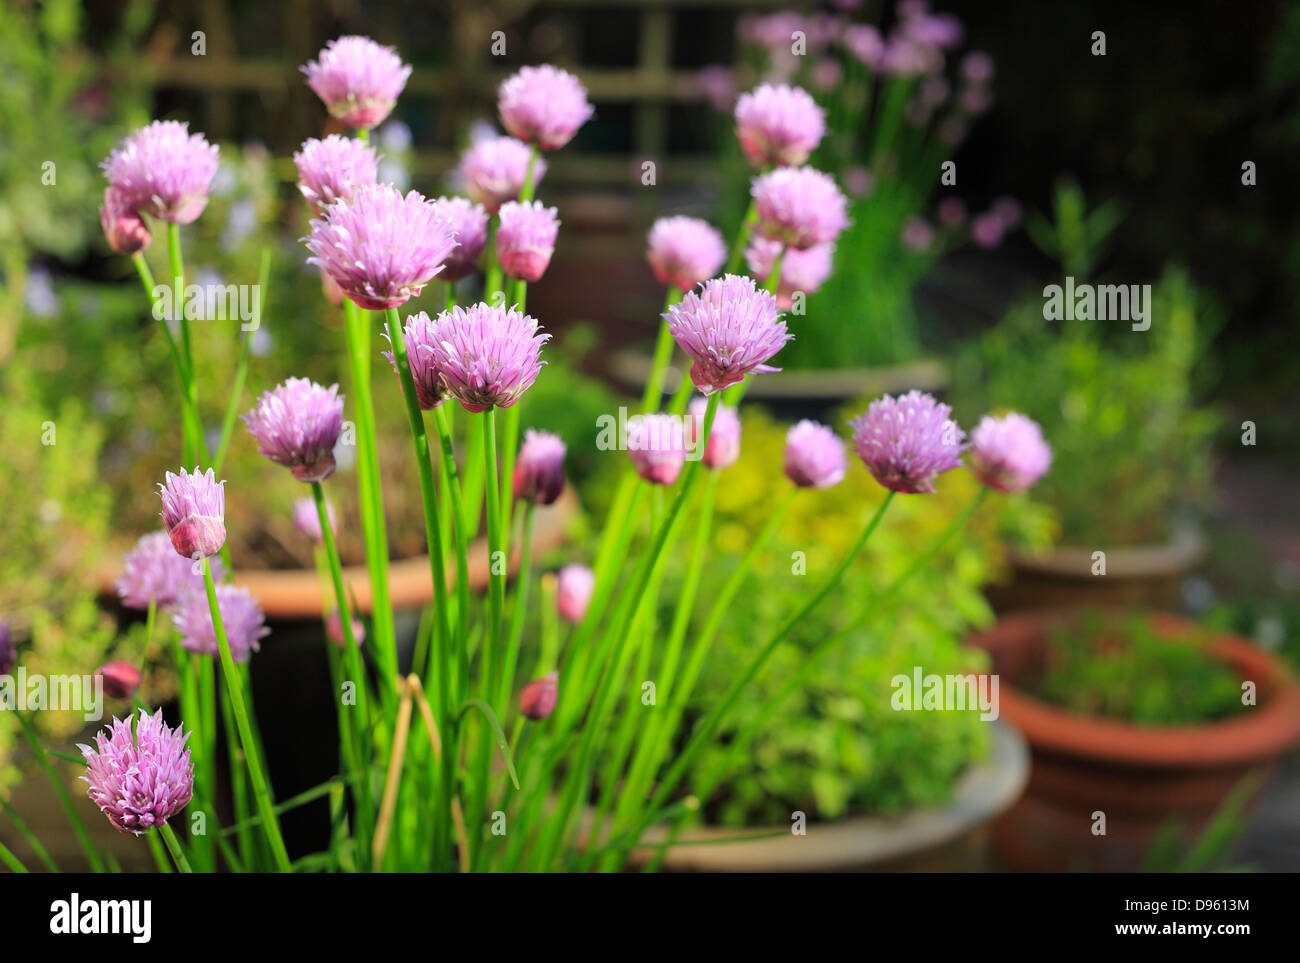 Chives flowering on a patio herb garden. - Stock Image